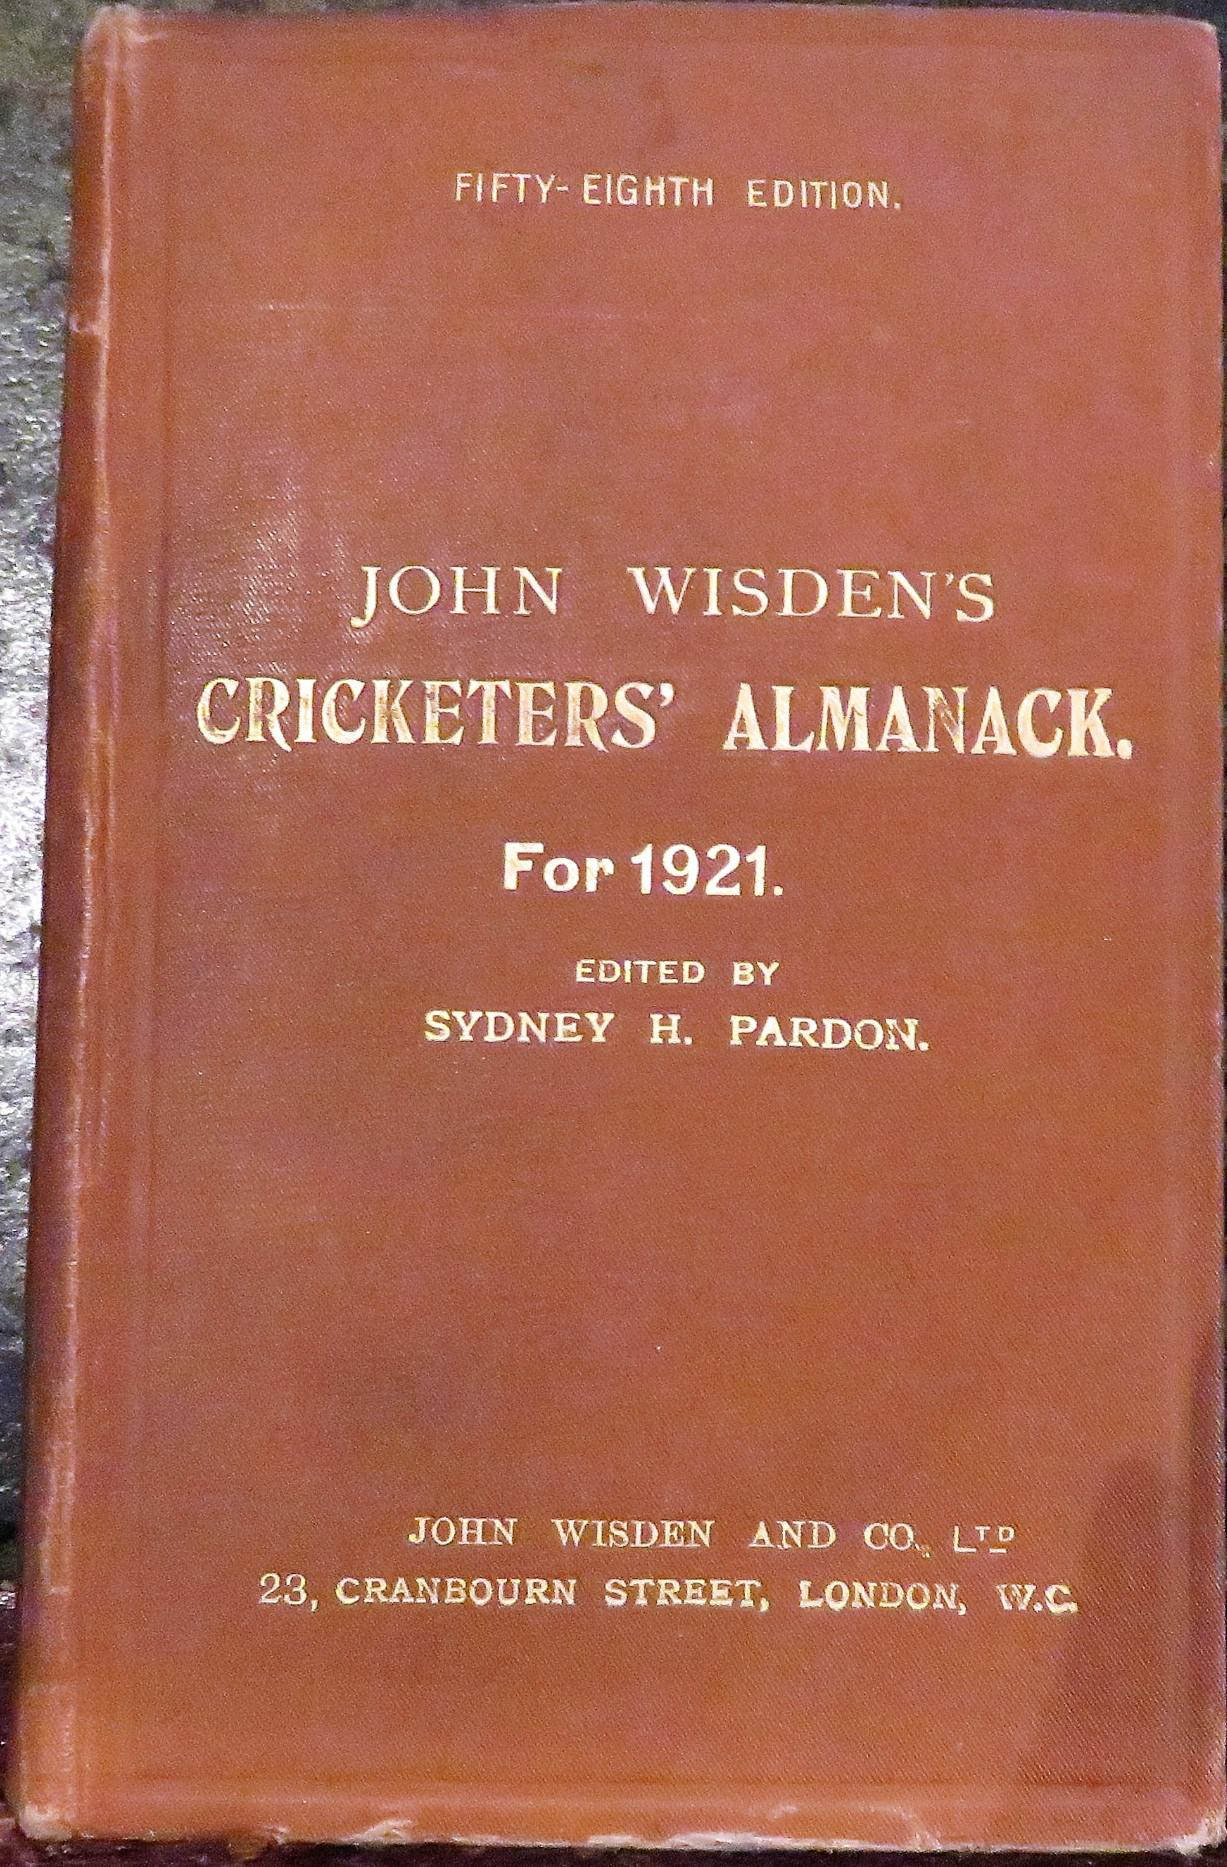 **John Wisden's Cricketers' Almanack For 1921**